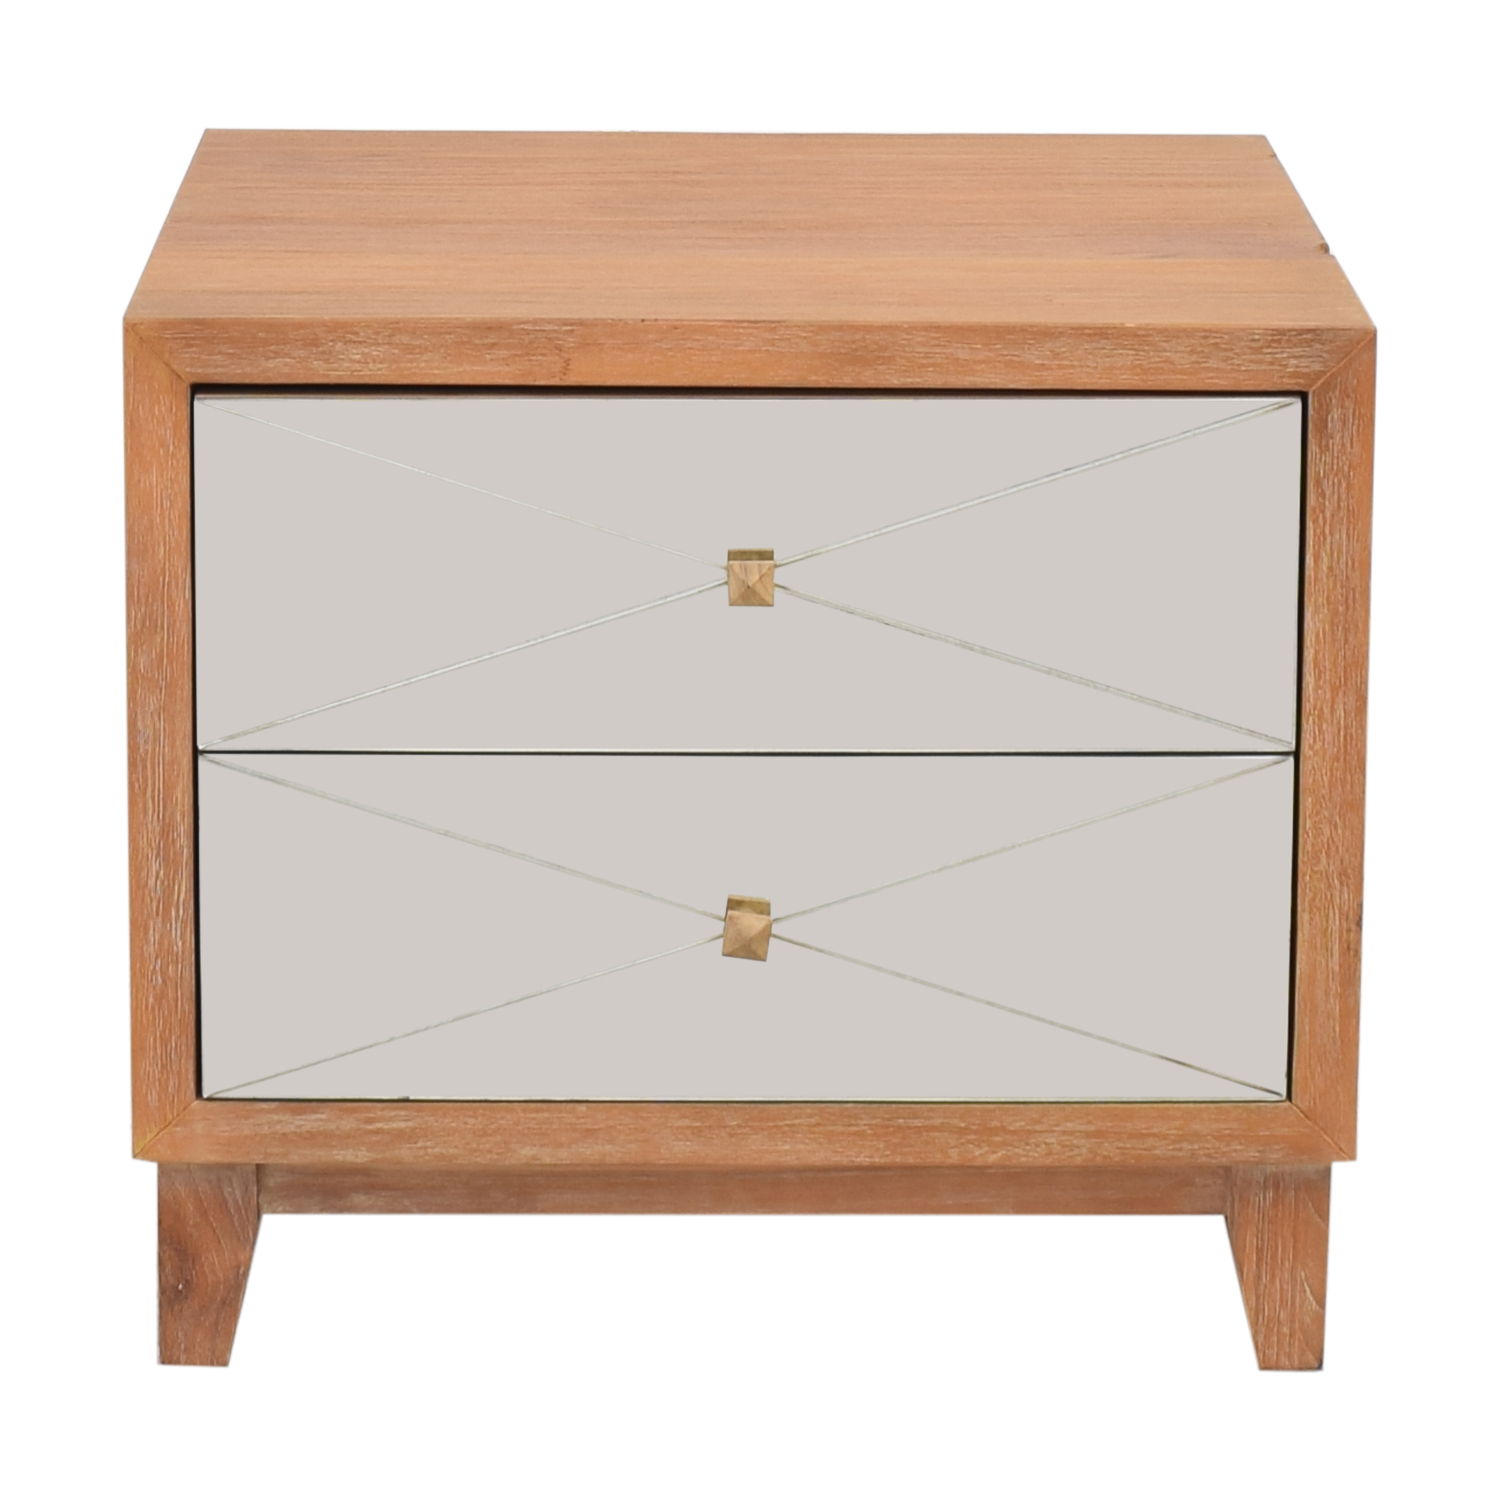 Brownstone Furniture Brownstone Furniture Mirrored Nightstand nj